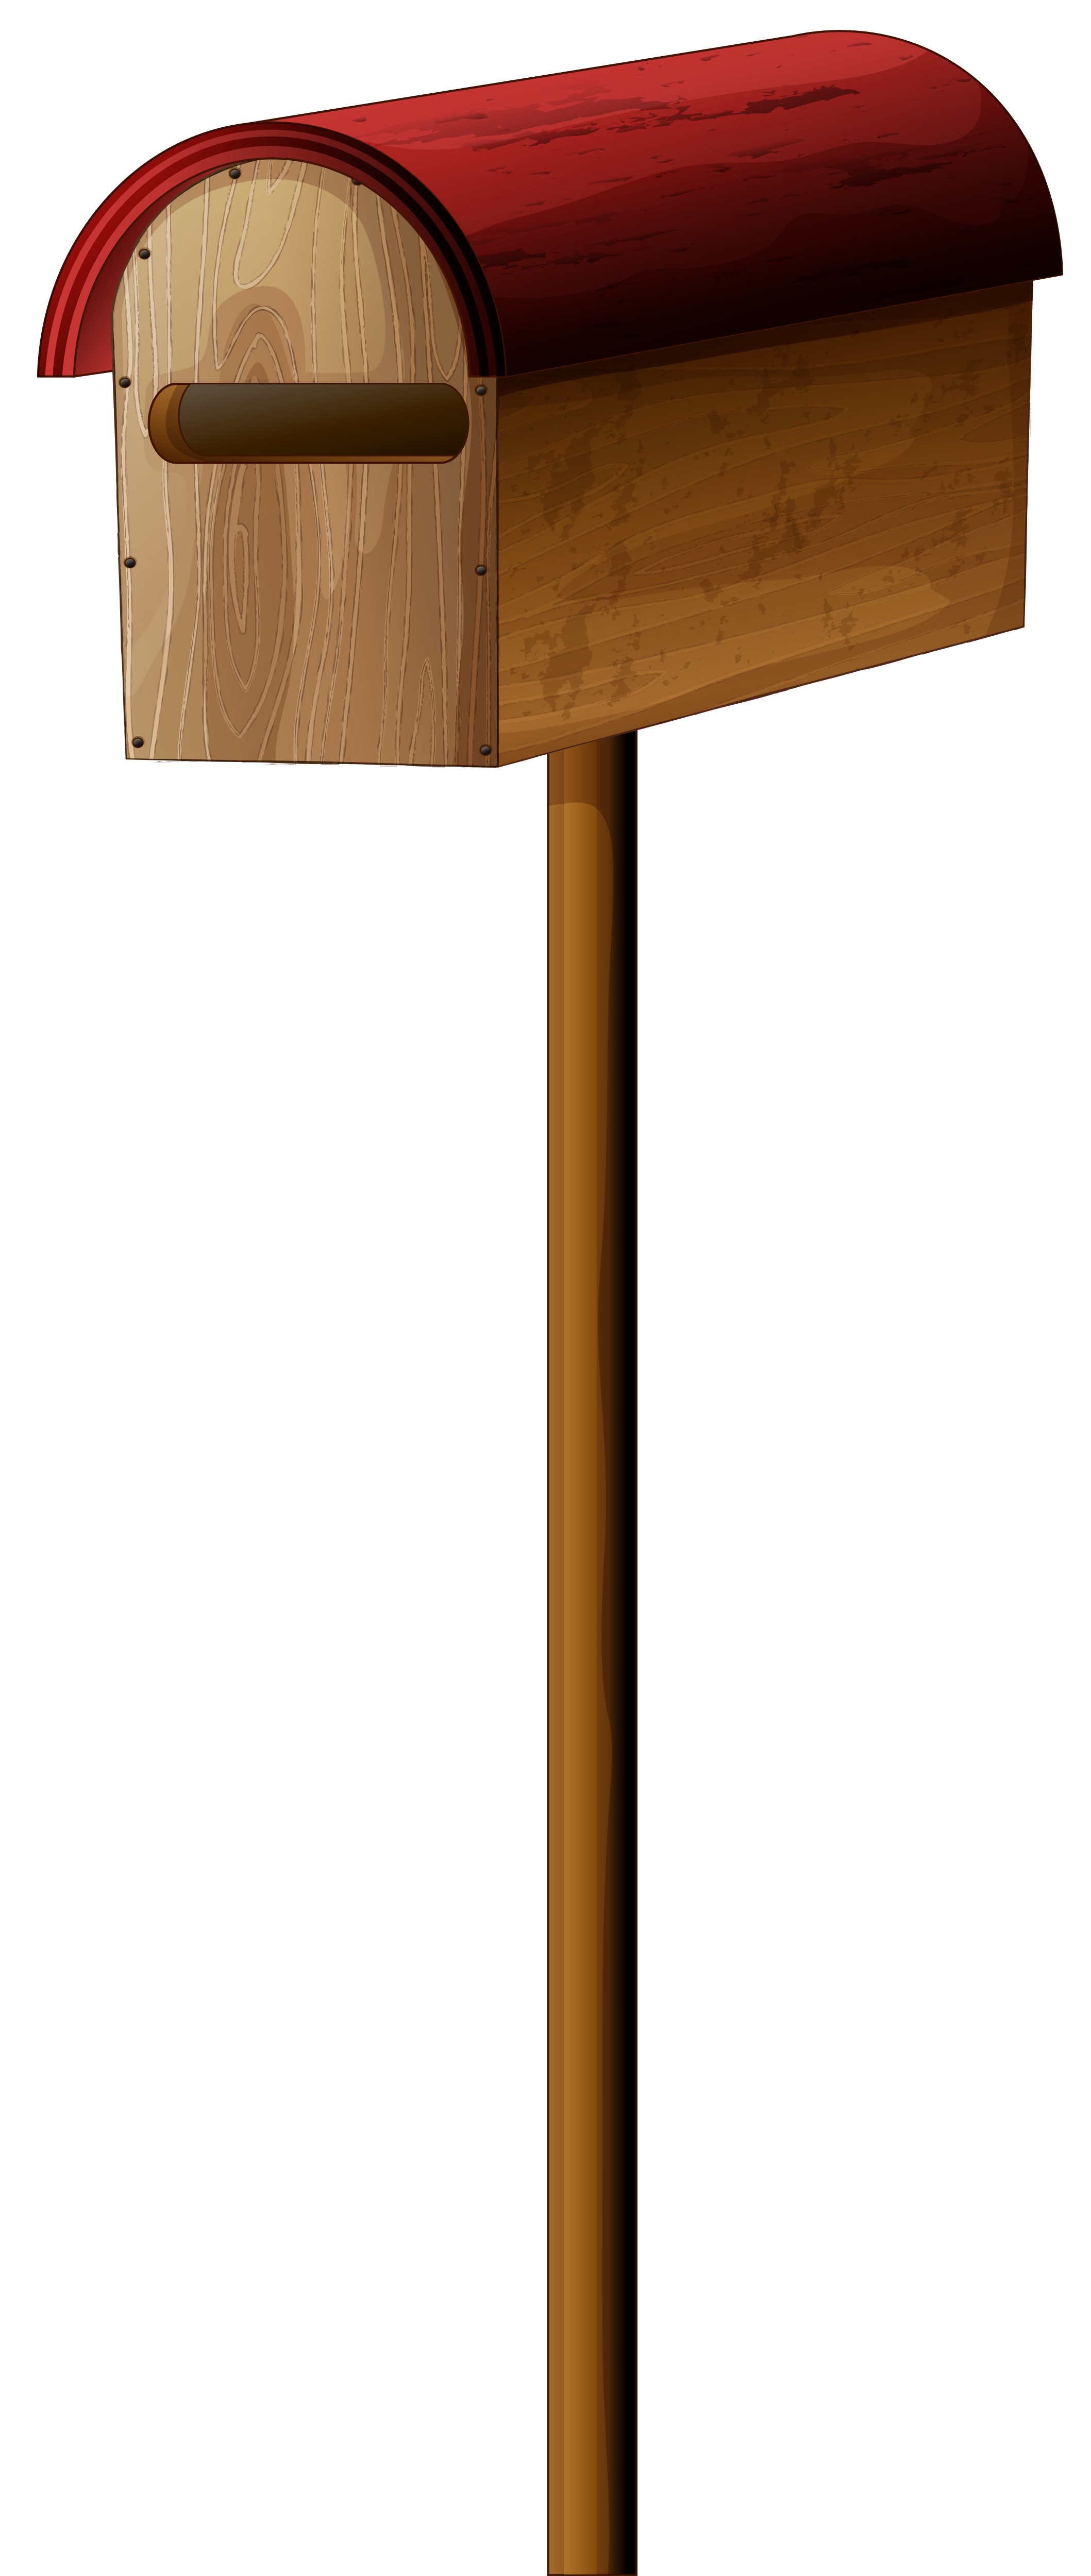 Old mailbox png. Clip art best web